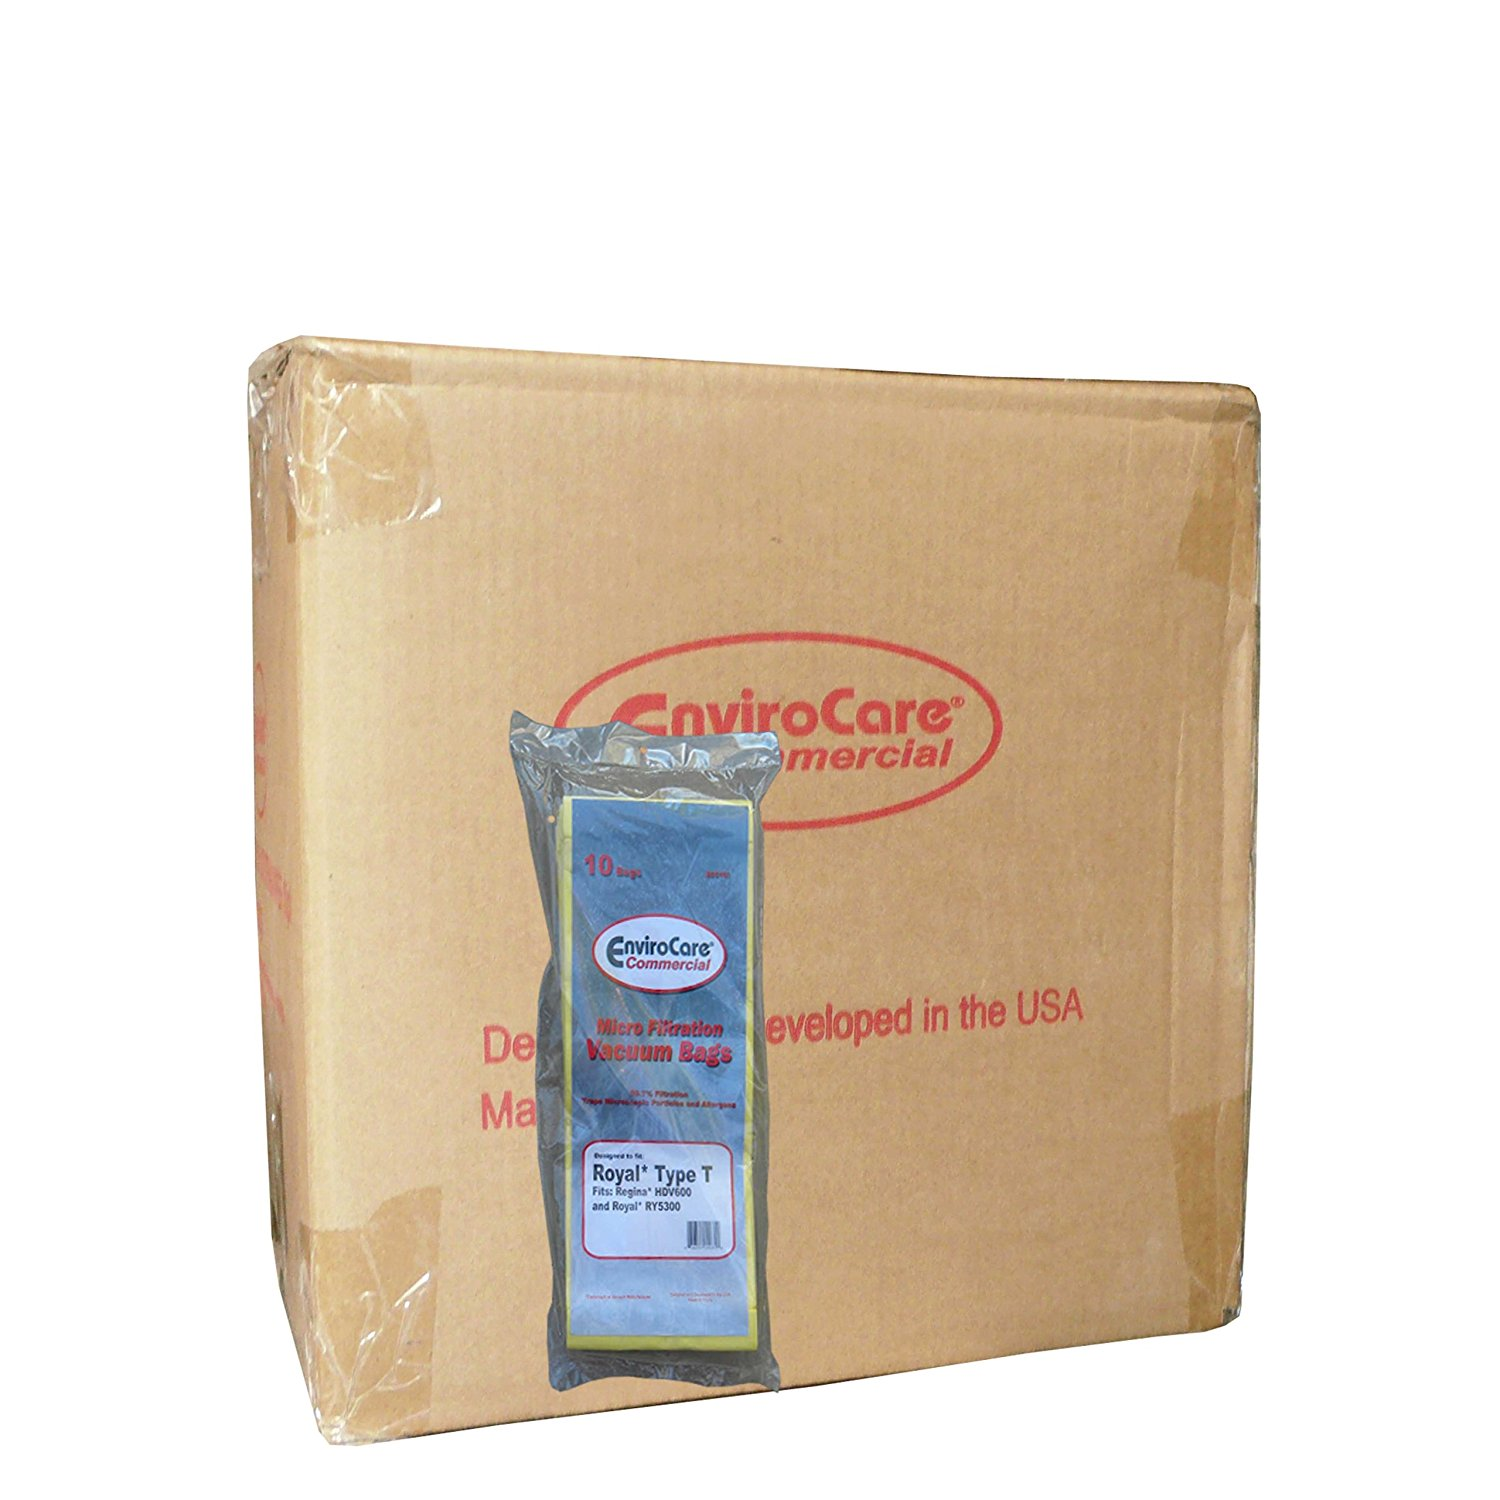 1 Case (10 pkgs) Commercial Bags Fit Royal Ultra Type T 3-423002-001 RY5300 Upright Vacuum Cleaner, Regina, Triton, LG, Simplicity, Bernina, Cirrus, Belvedere, Riccar, Carpet Pro, CleanMax, DustCare, Evolution, Sanyo, Fuller Brush, Powr-Flite, Sears Kenmore, Panasonic3-423002-001, 1-423002-000,